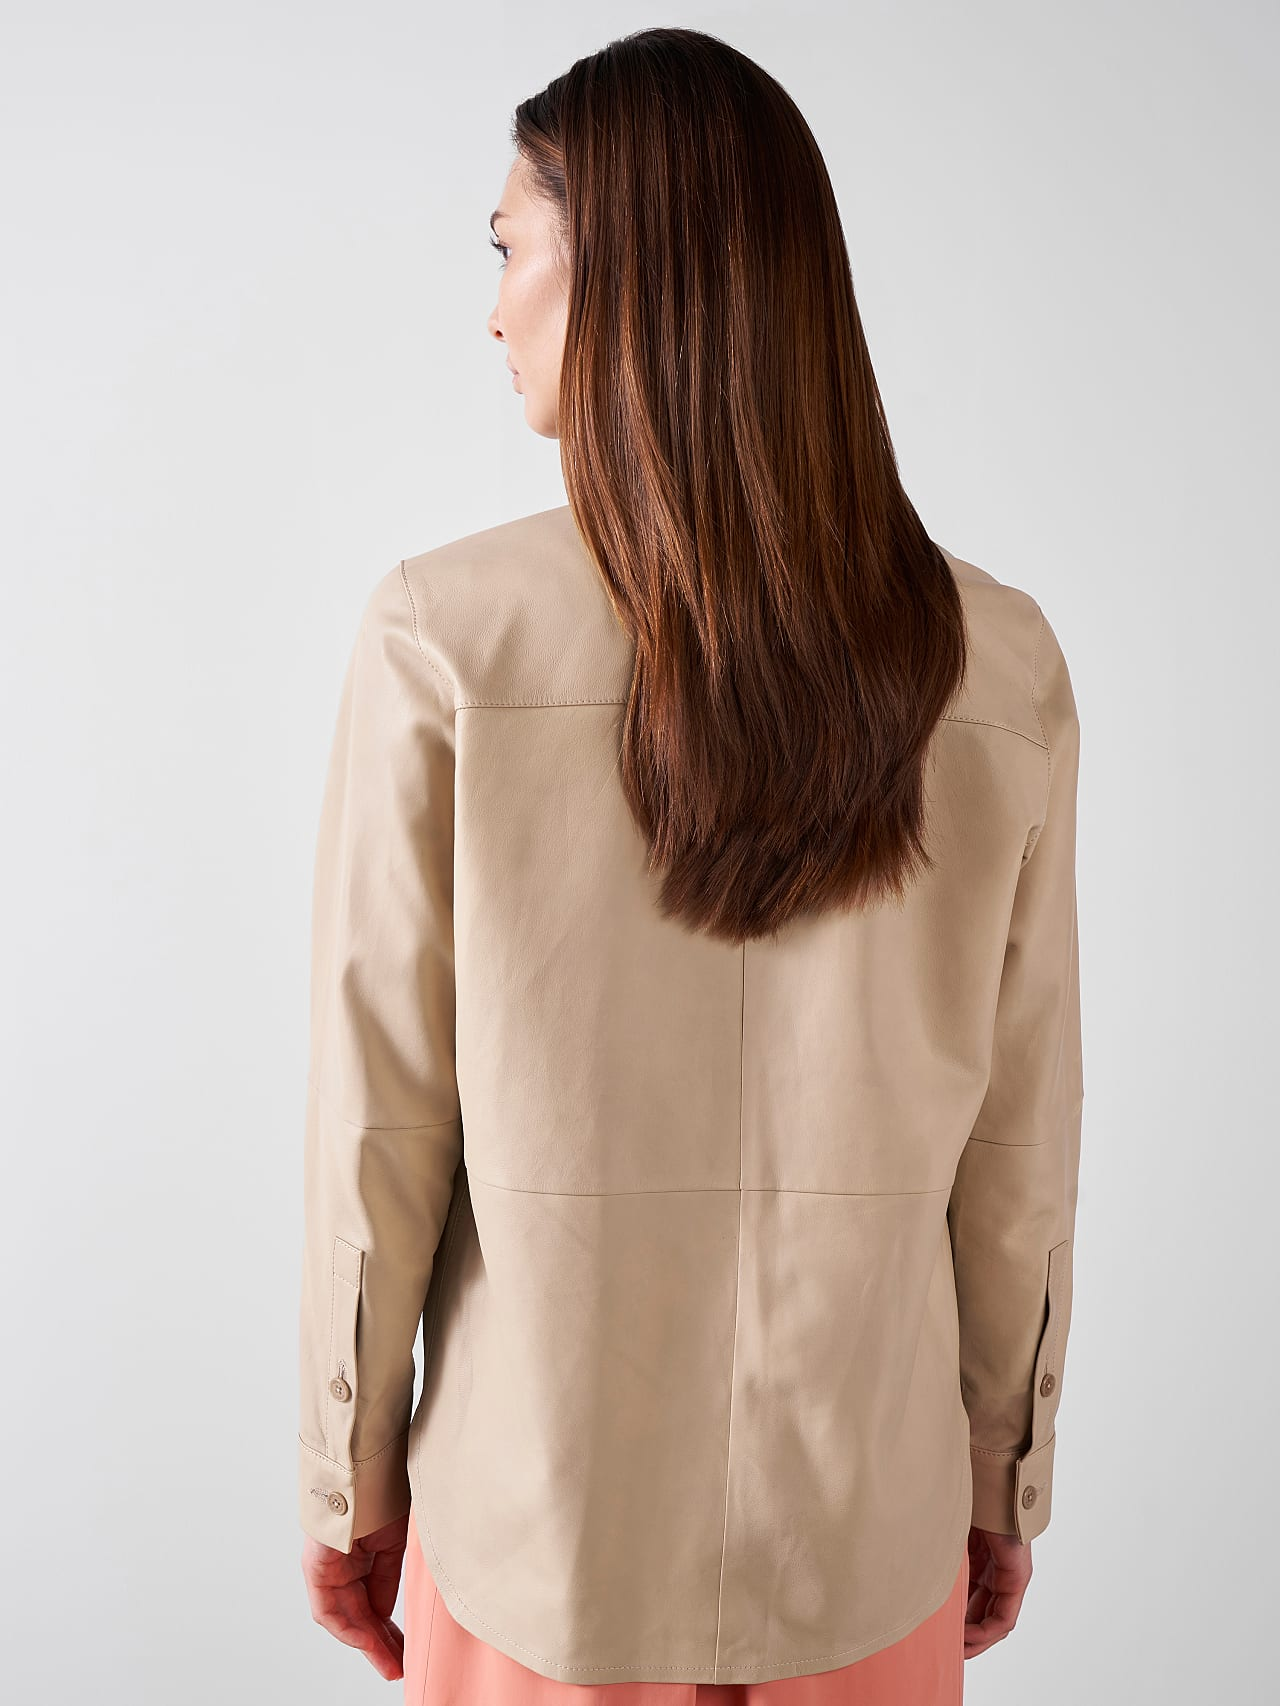 LEORD V1.Y5.01 Leather Shirt Sand Front Main Alpha Tauri